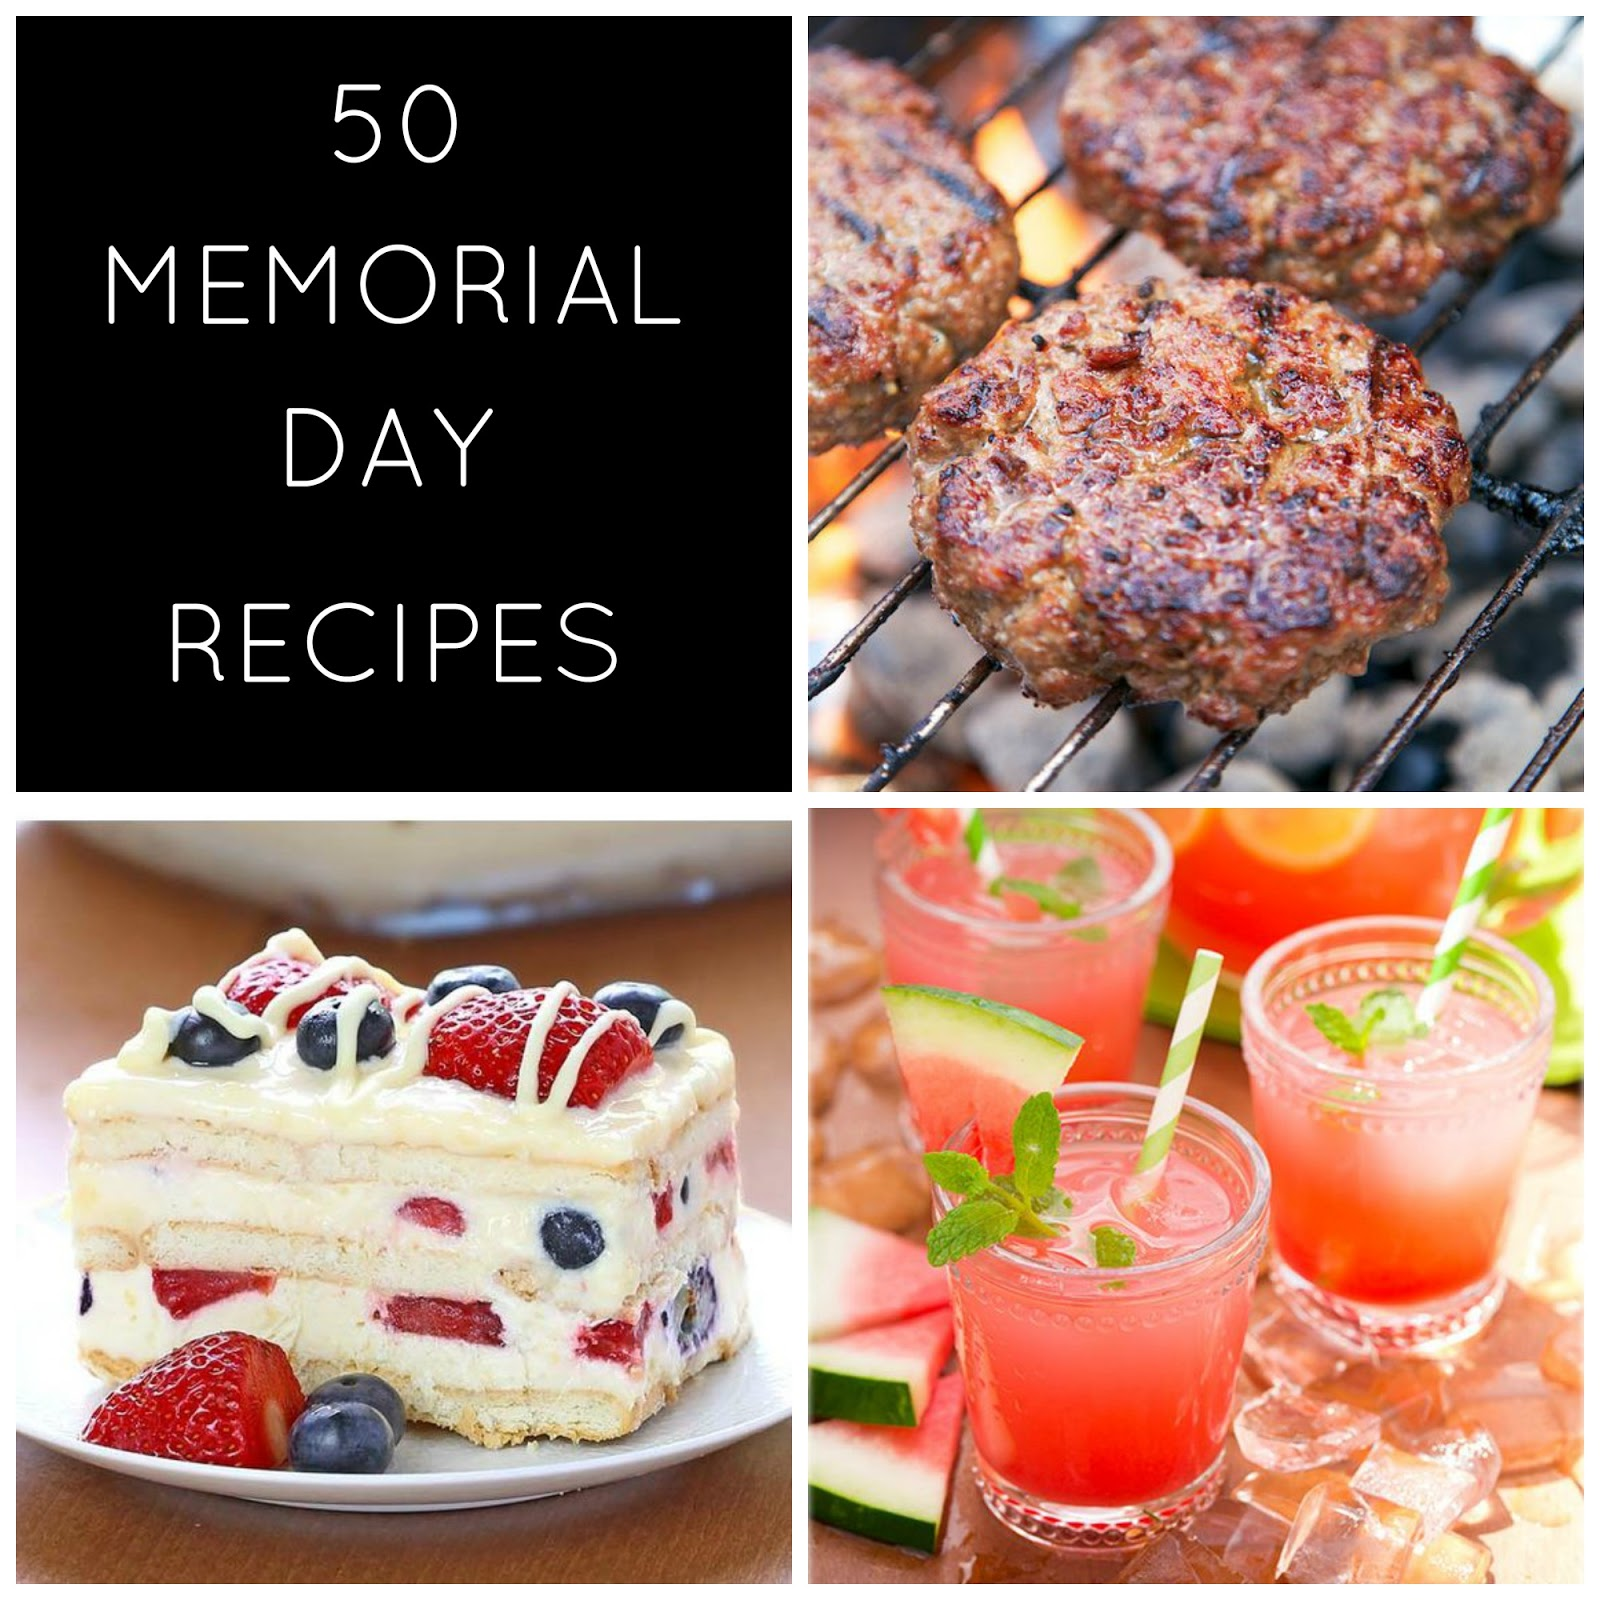 Enjoy these spring-themed recipes that highlight fresh fruits, meat, and desserts for your Memorial Day weekend!